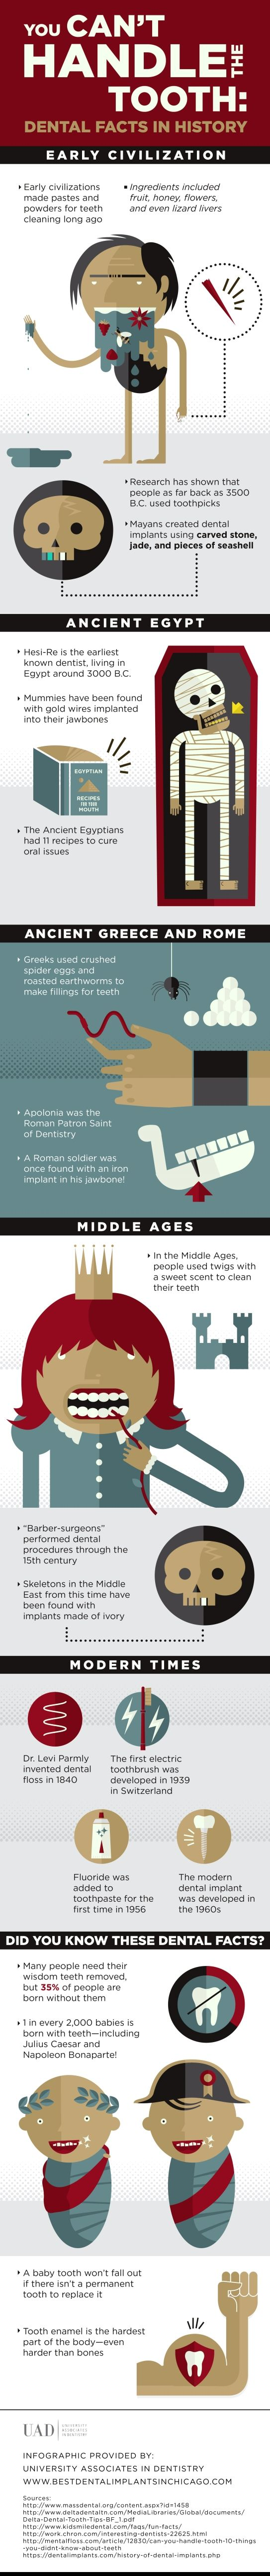 You may need to get your wisdom teeth removed, but approximately 35% of people are born without wisdom teeth! Click over to this Chicago dental consultation infographic to find other interesting facts about dental trends throughout history.